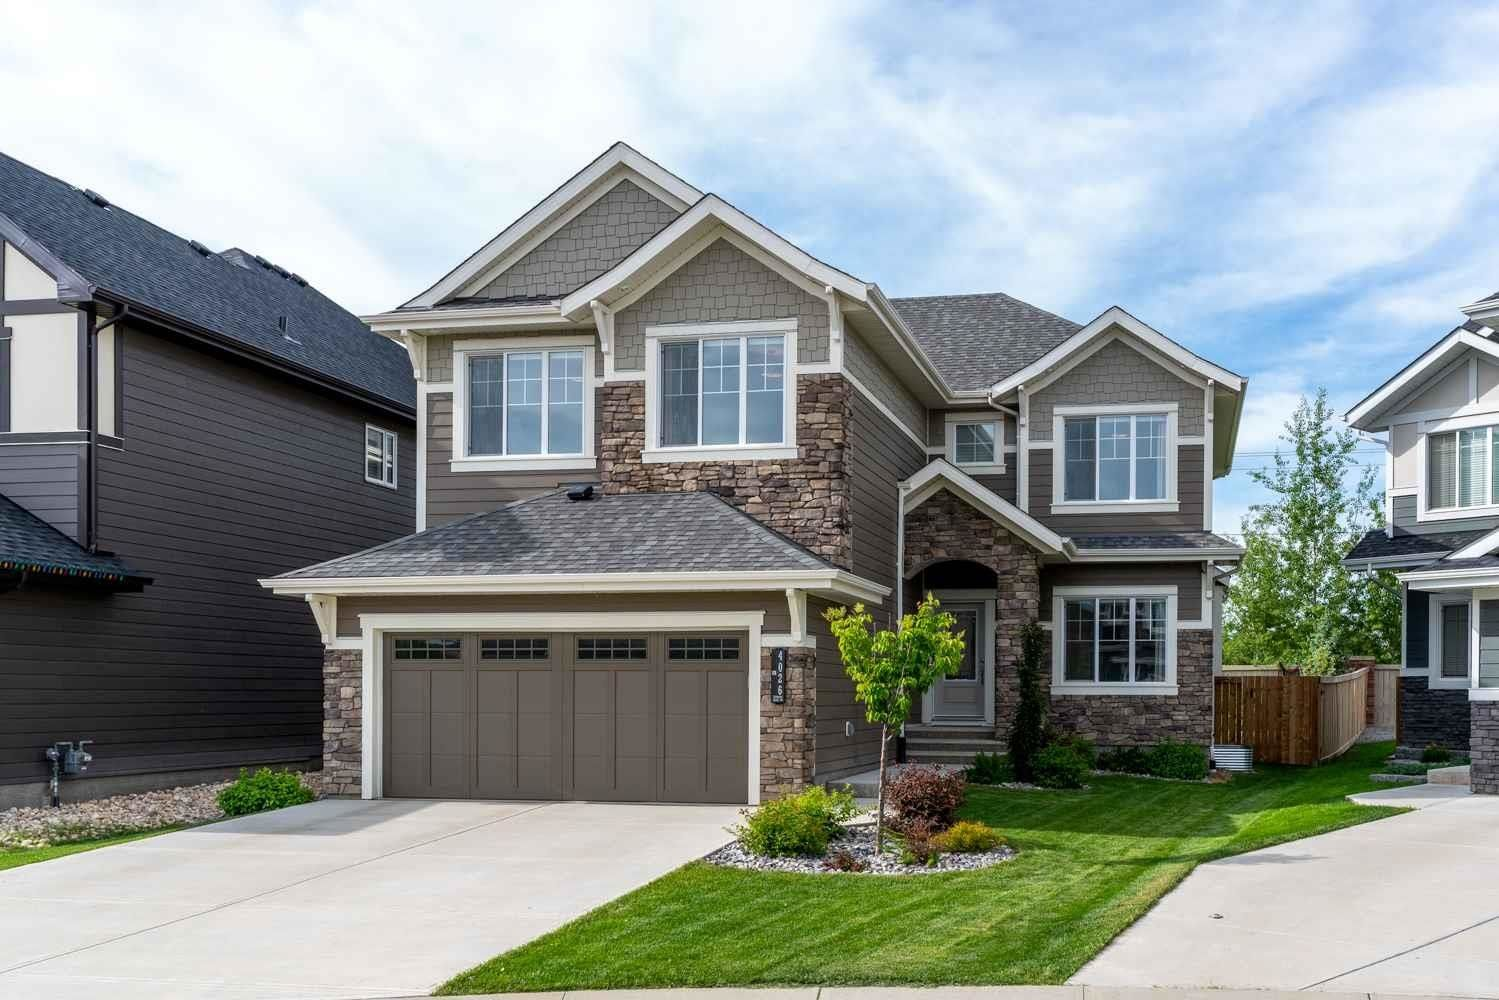 Main Photo: 4026 KENNEDY Close in Edmonton: Zone 56 House for sale : MLS®# E4259478